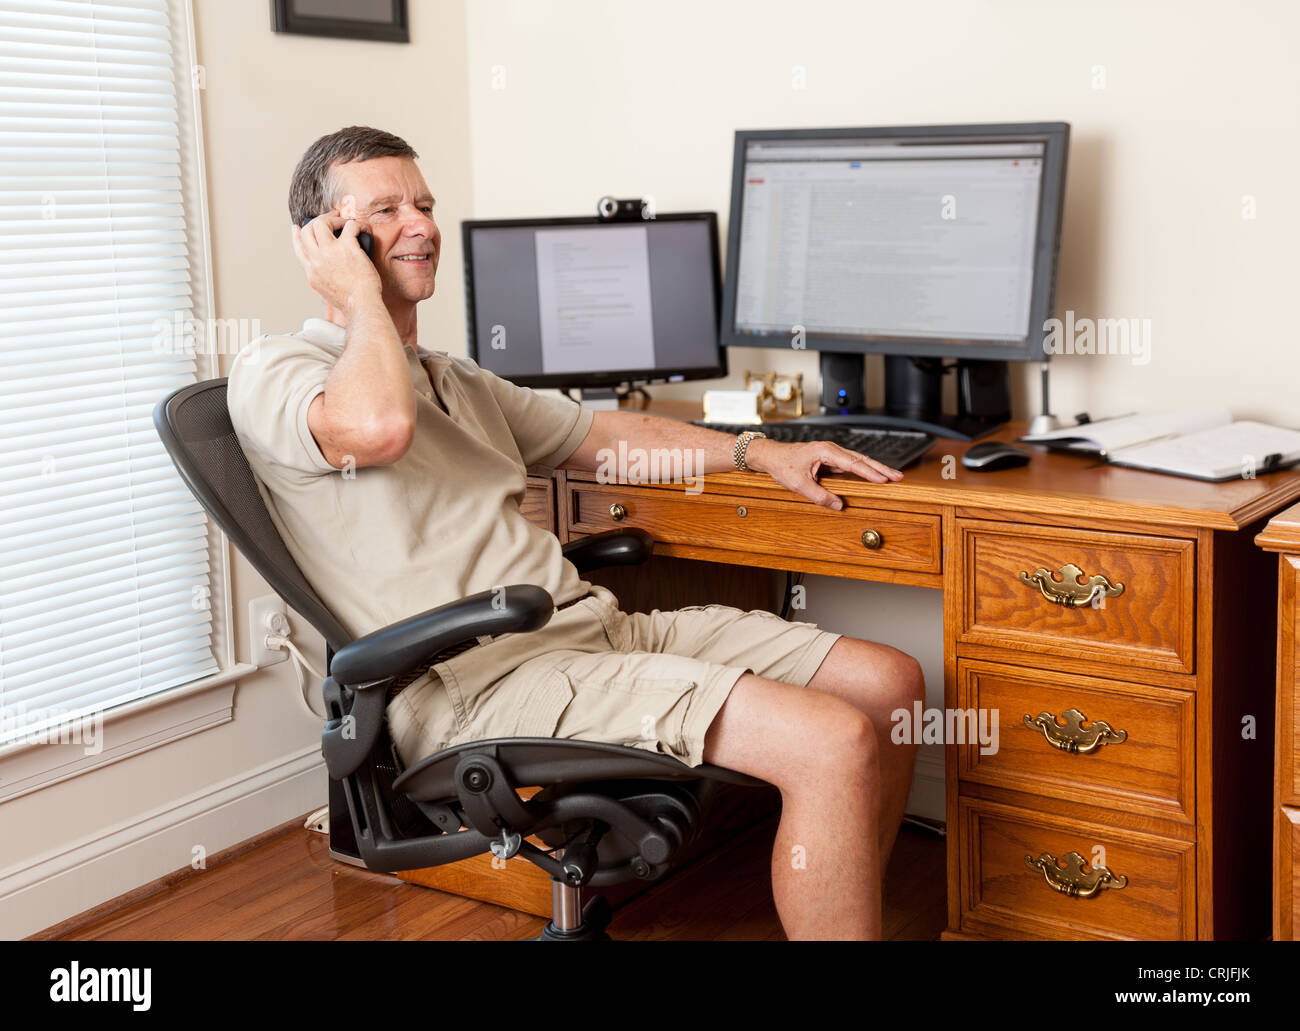 Man working from home office in shorts with desk with two monitors on the phone - Stock Image